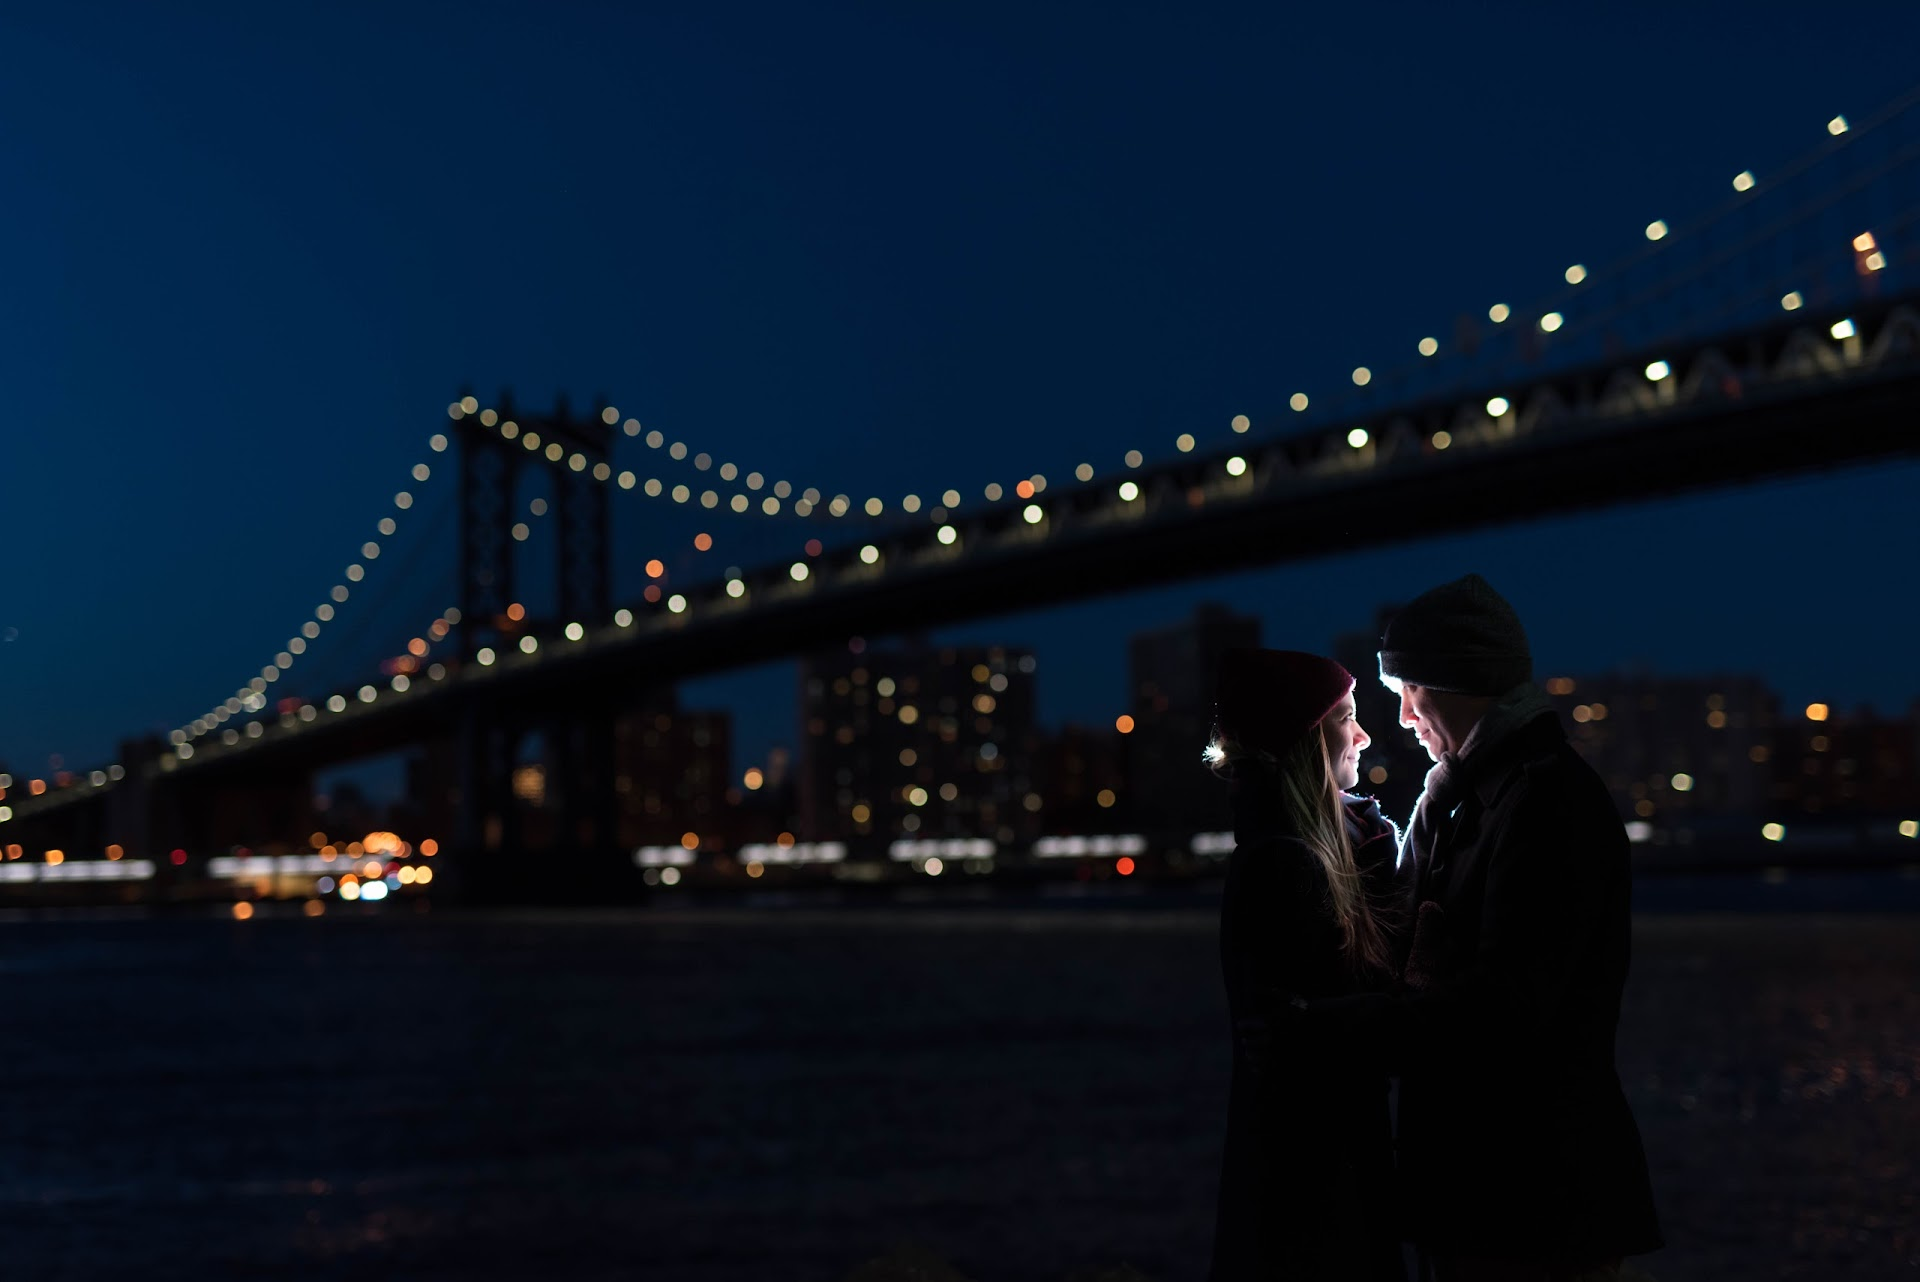 photography, engagements, couple, photography shoot, popular photo spots in nyc, brooklyn, new york, dumbo, manhattan bridge, brooklyn bridge, night, lights, nighttime, flash,